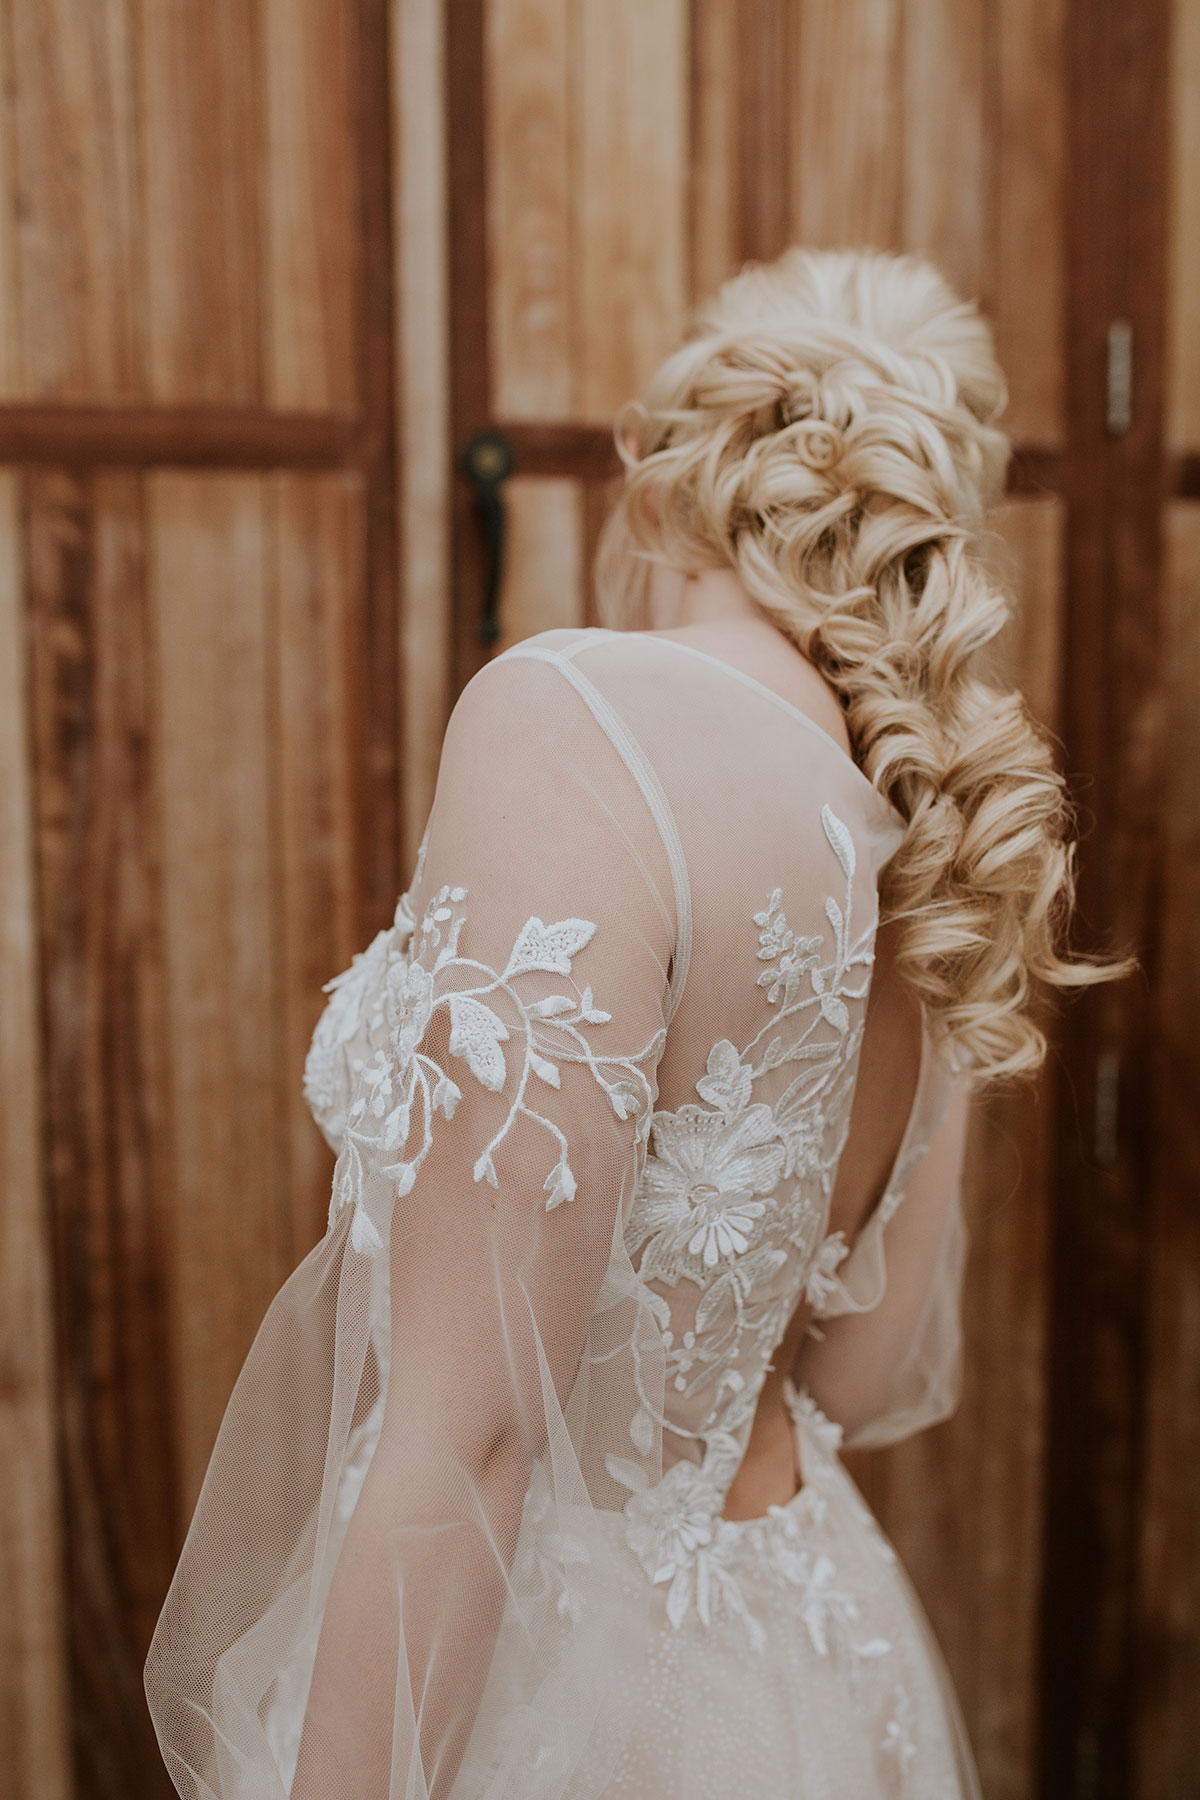 Wedding dress details we would love you to consider when selecting your gown, Nostalgia by Amber He